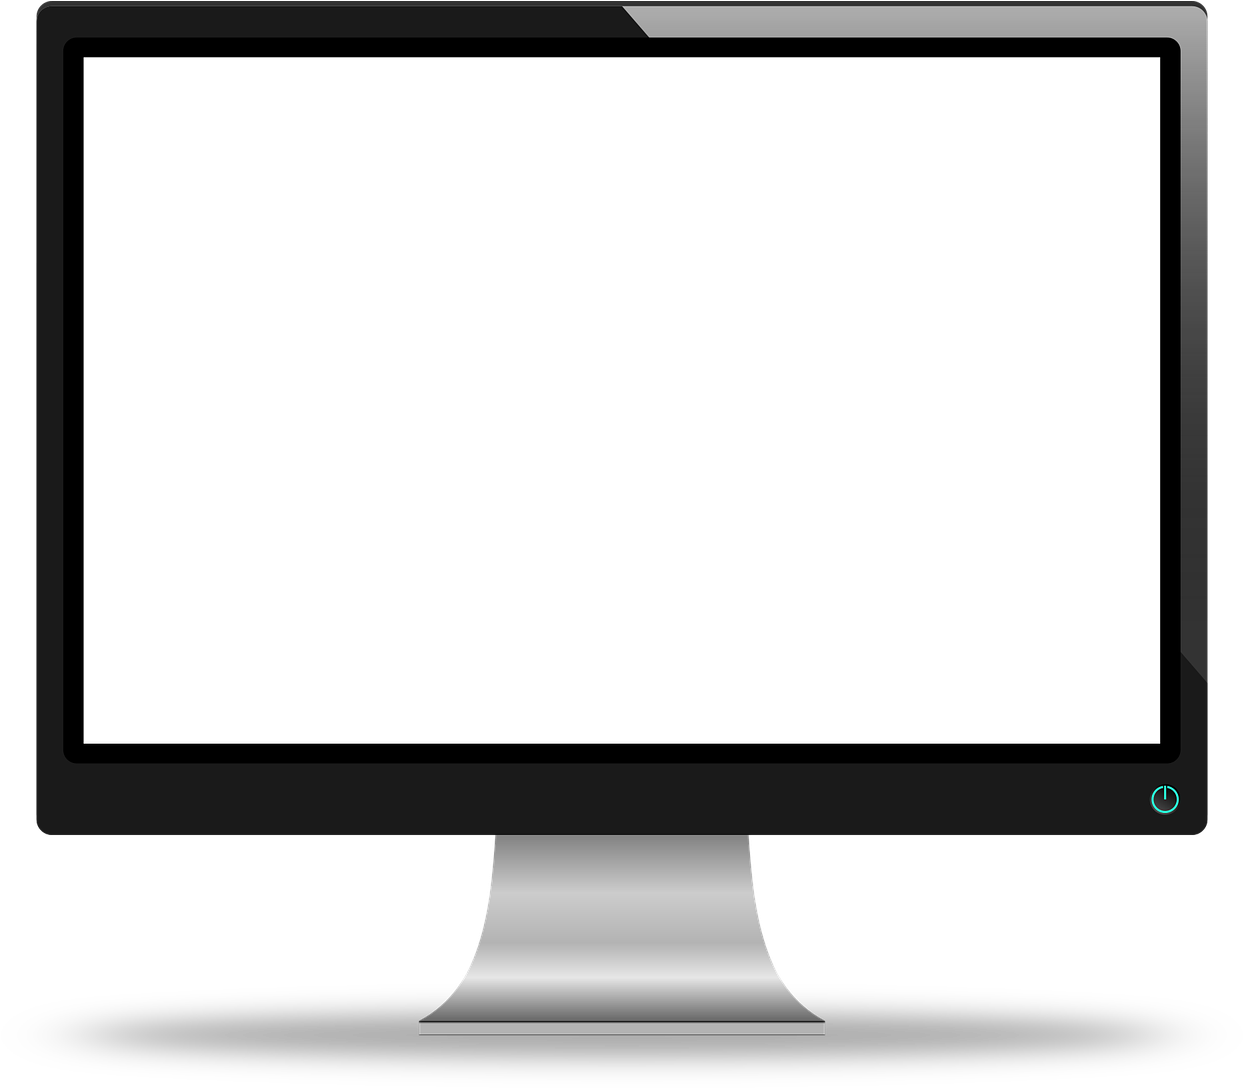 Free download screen monitor. Laptop clipart display